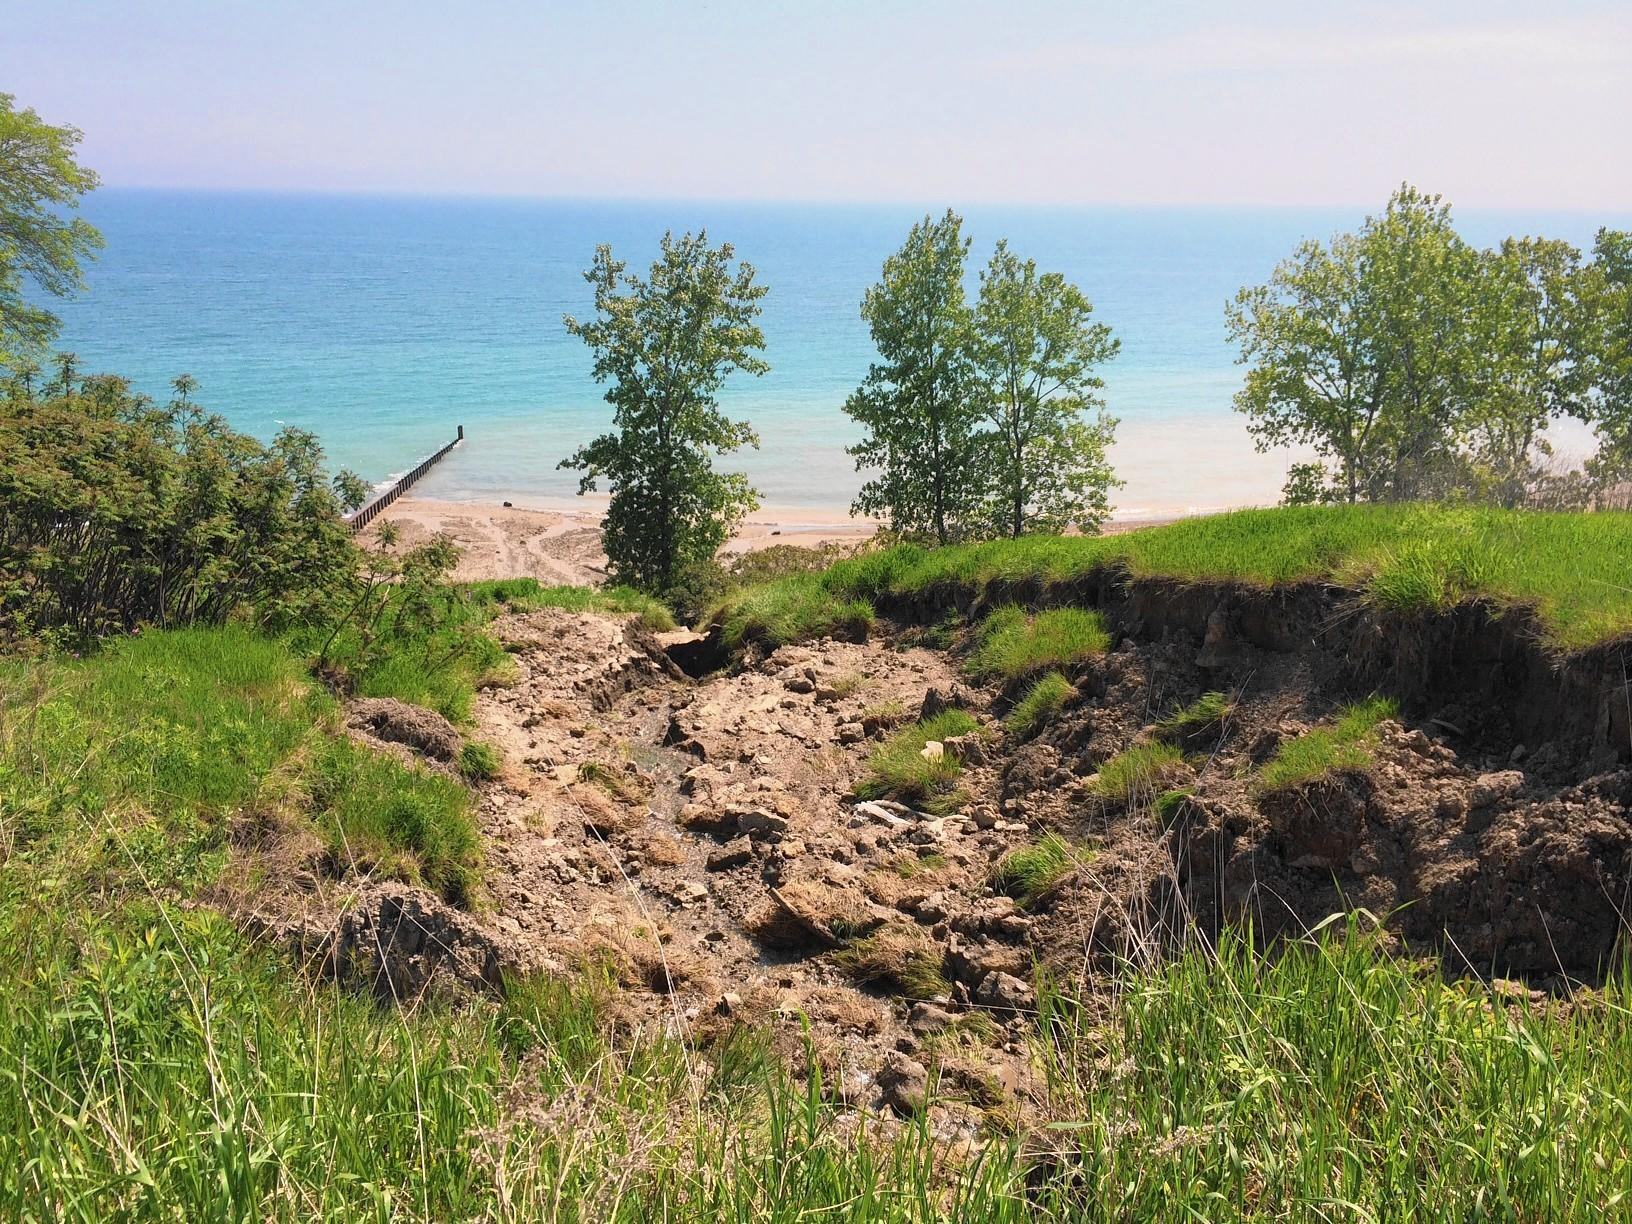 A 40-yard-long swath of lake bluff at Fort Sheridan collapsed into Lake Michigan this week. Lake County Forest Preserves officials hope to determine the exact cause and prevent further erosion.